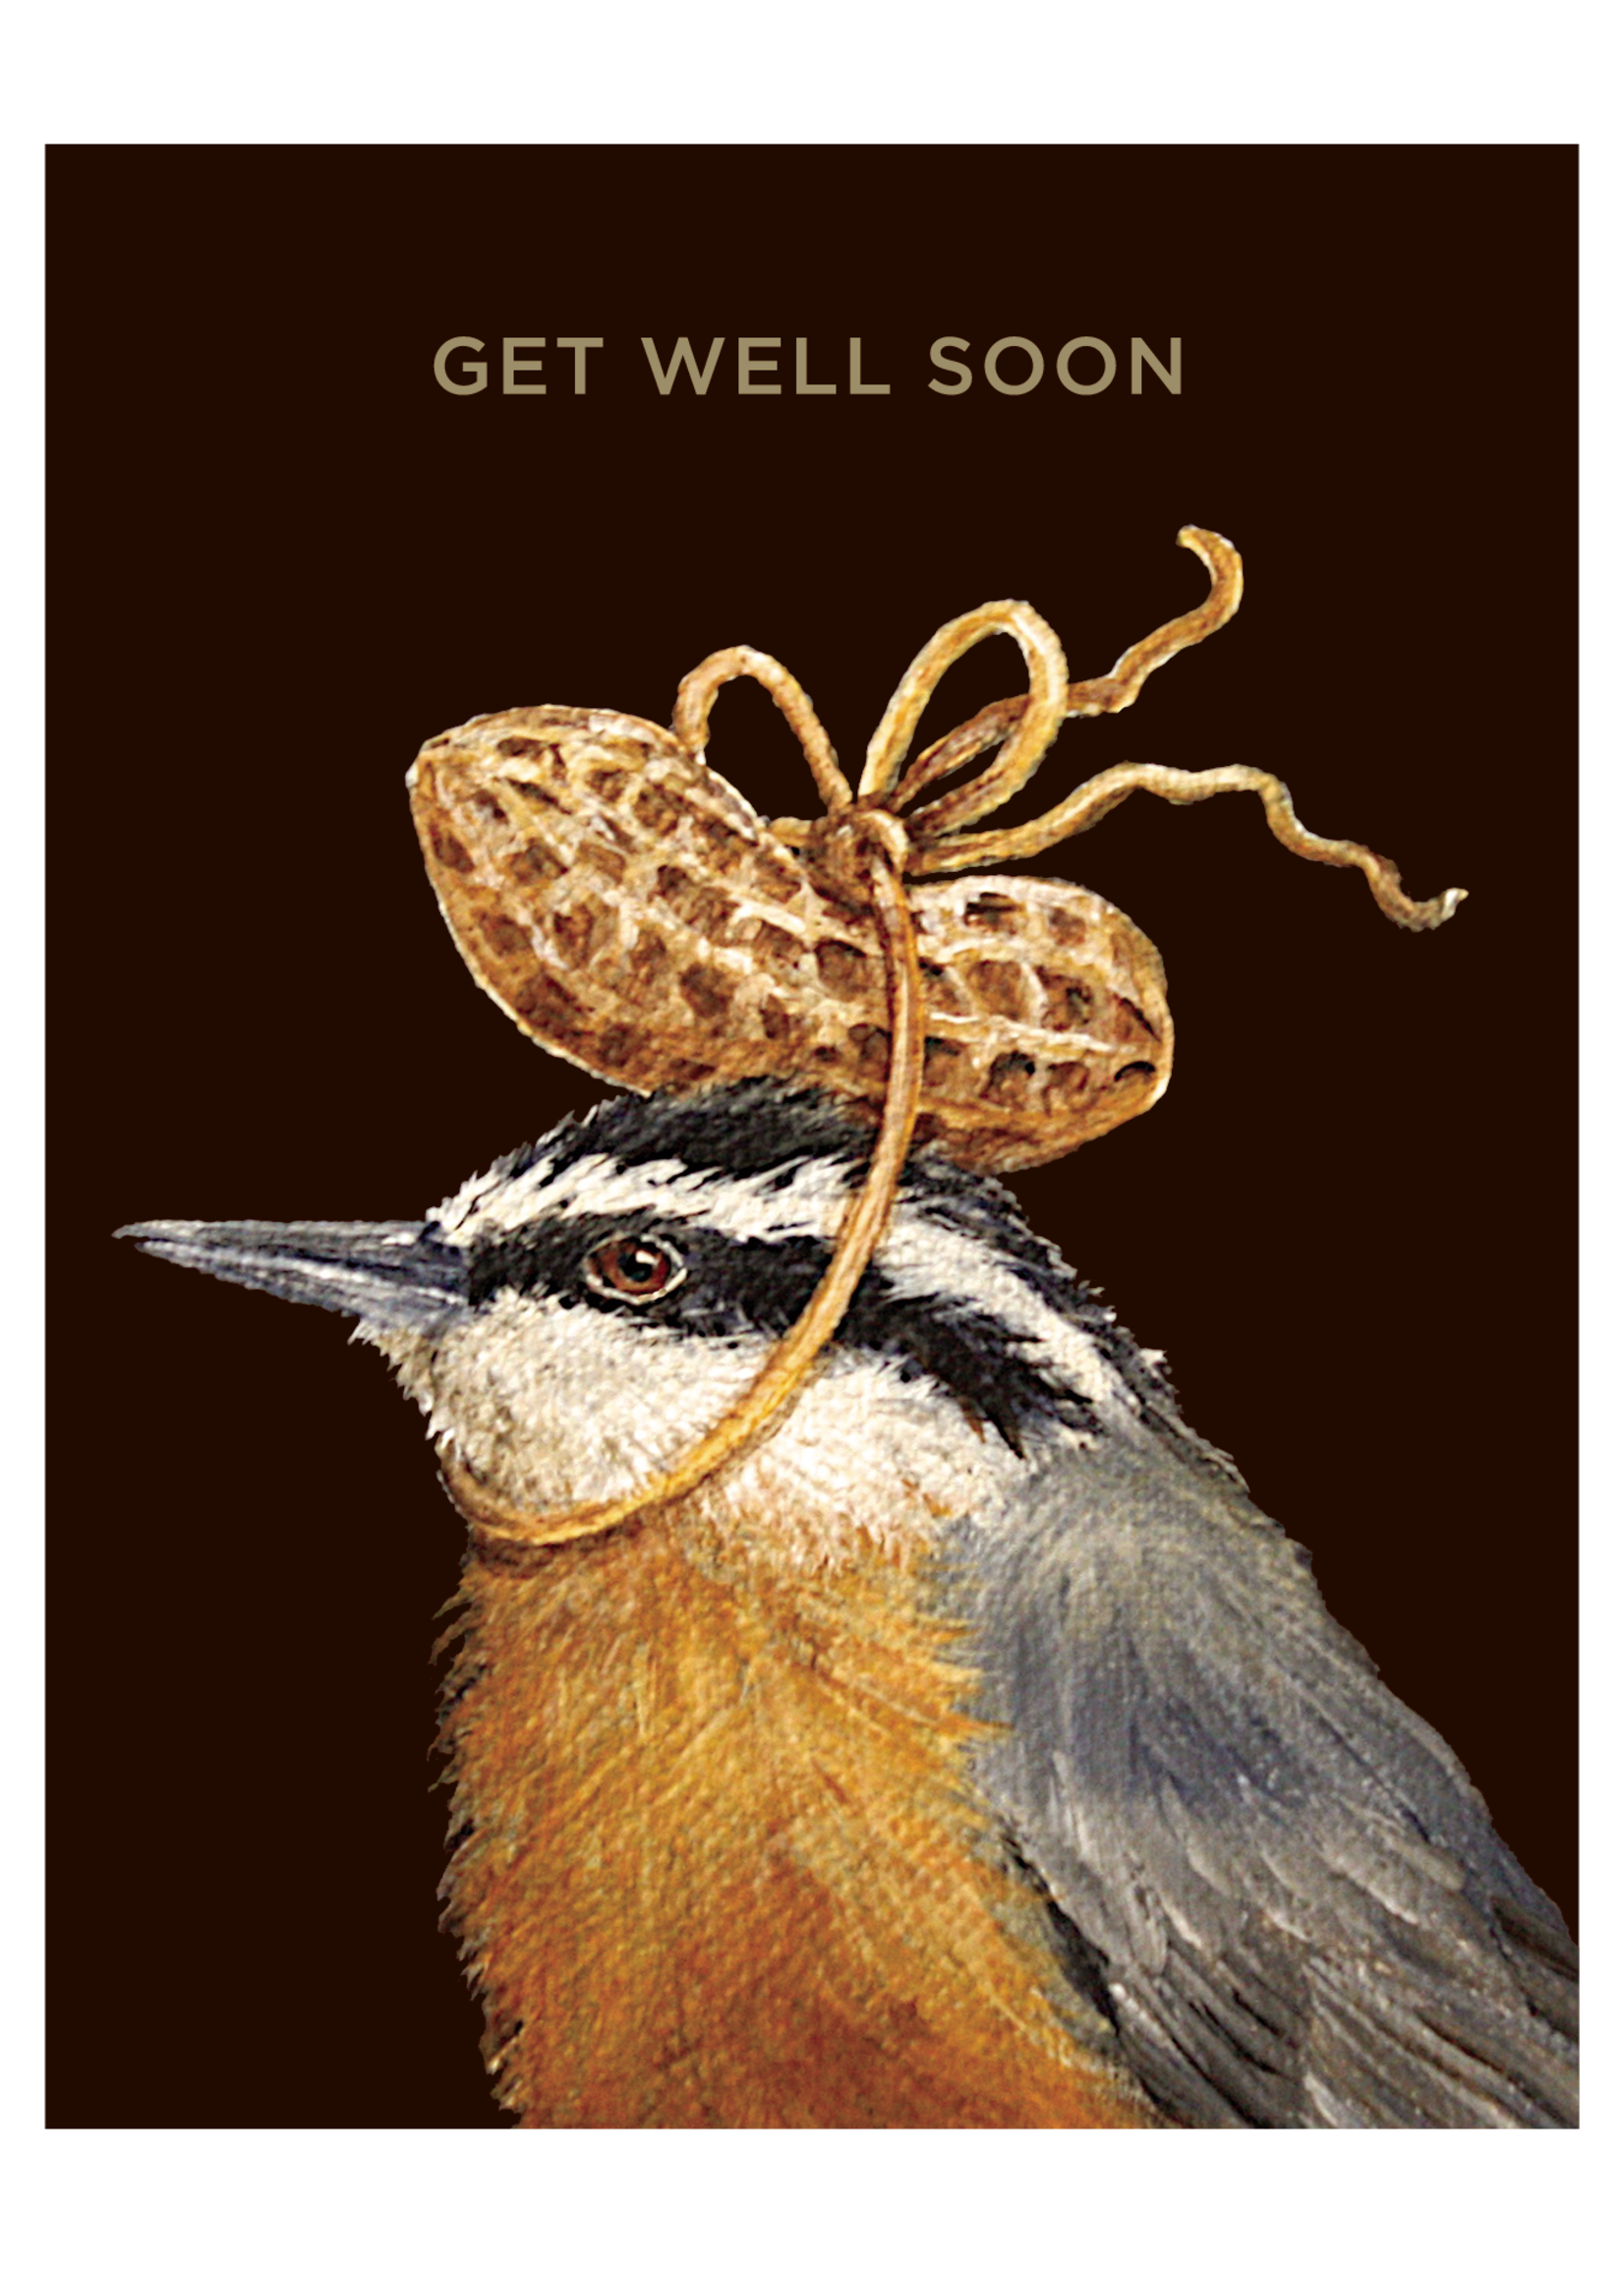 Hester & Cook Card - Get Well Peanut